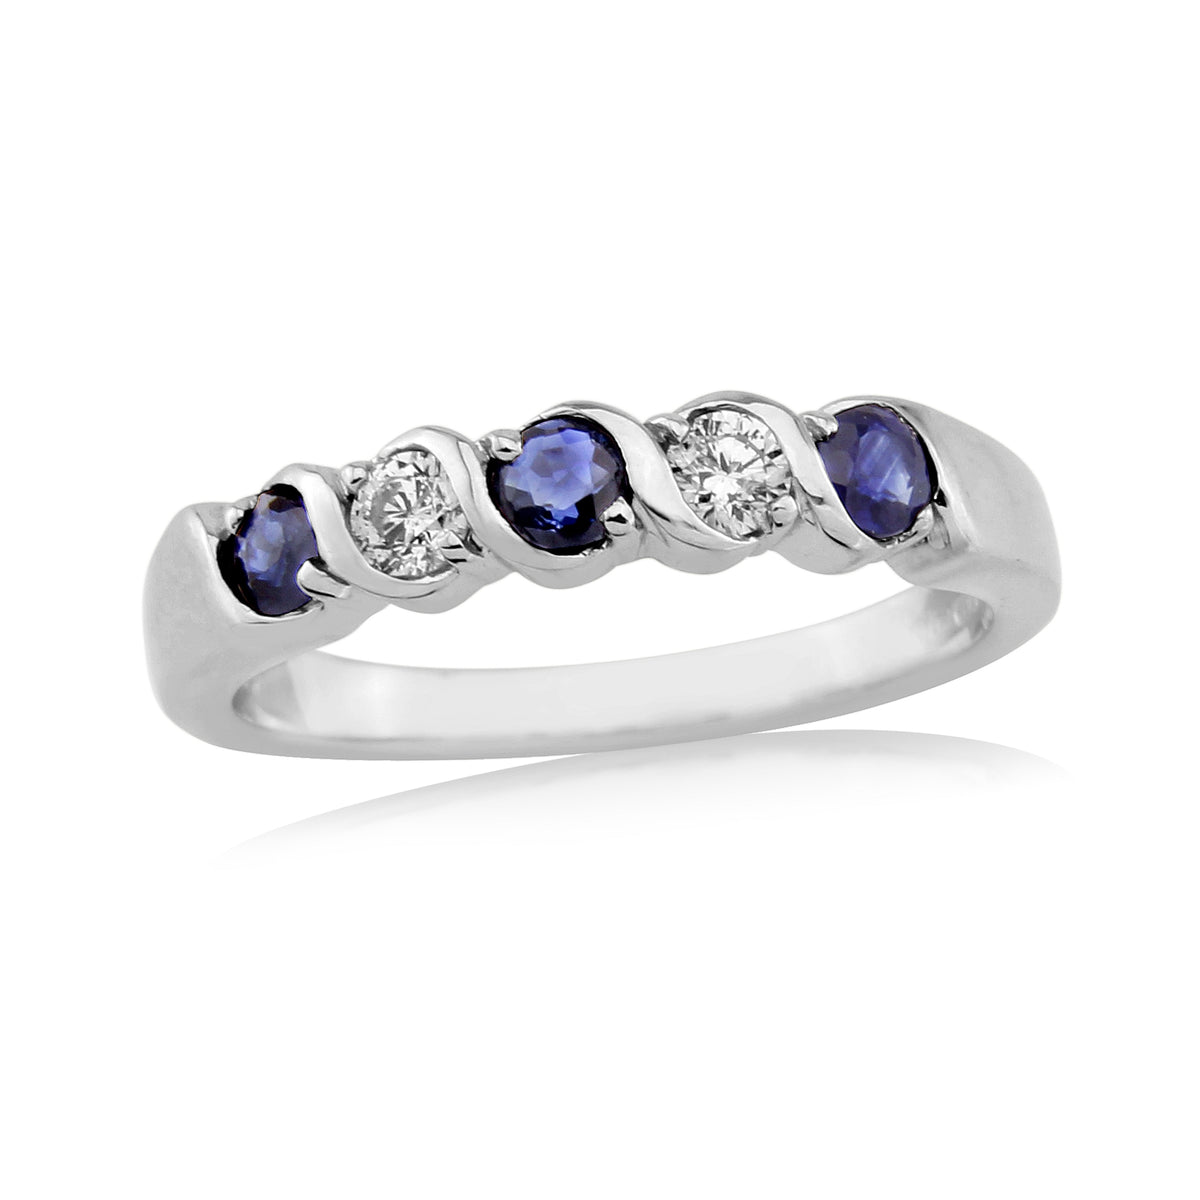 9ct White Gold Diamond and Sapphire Five Stone Ring